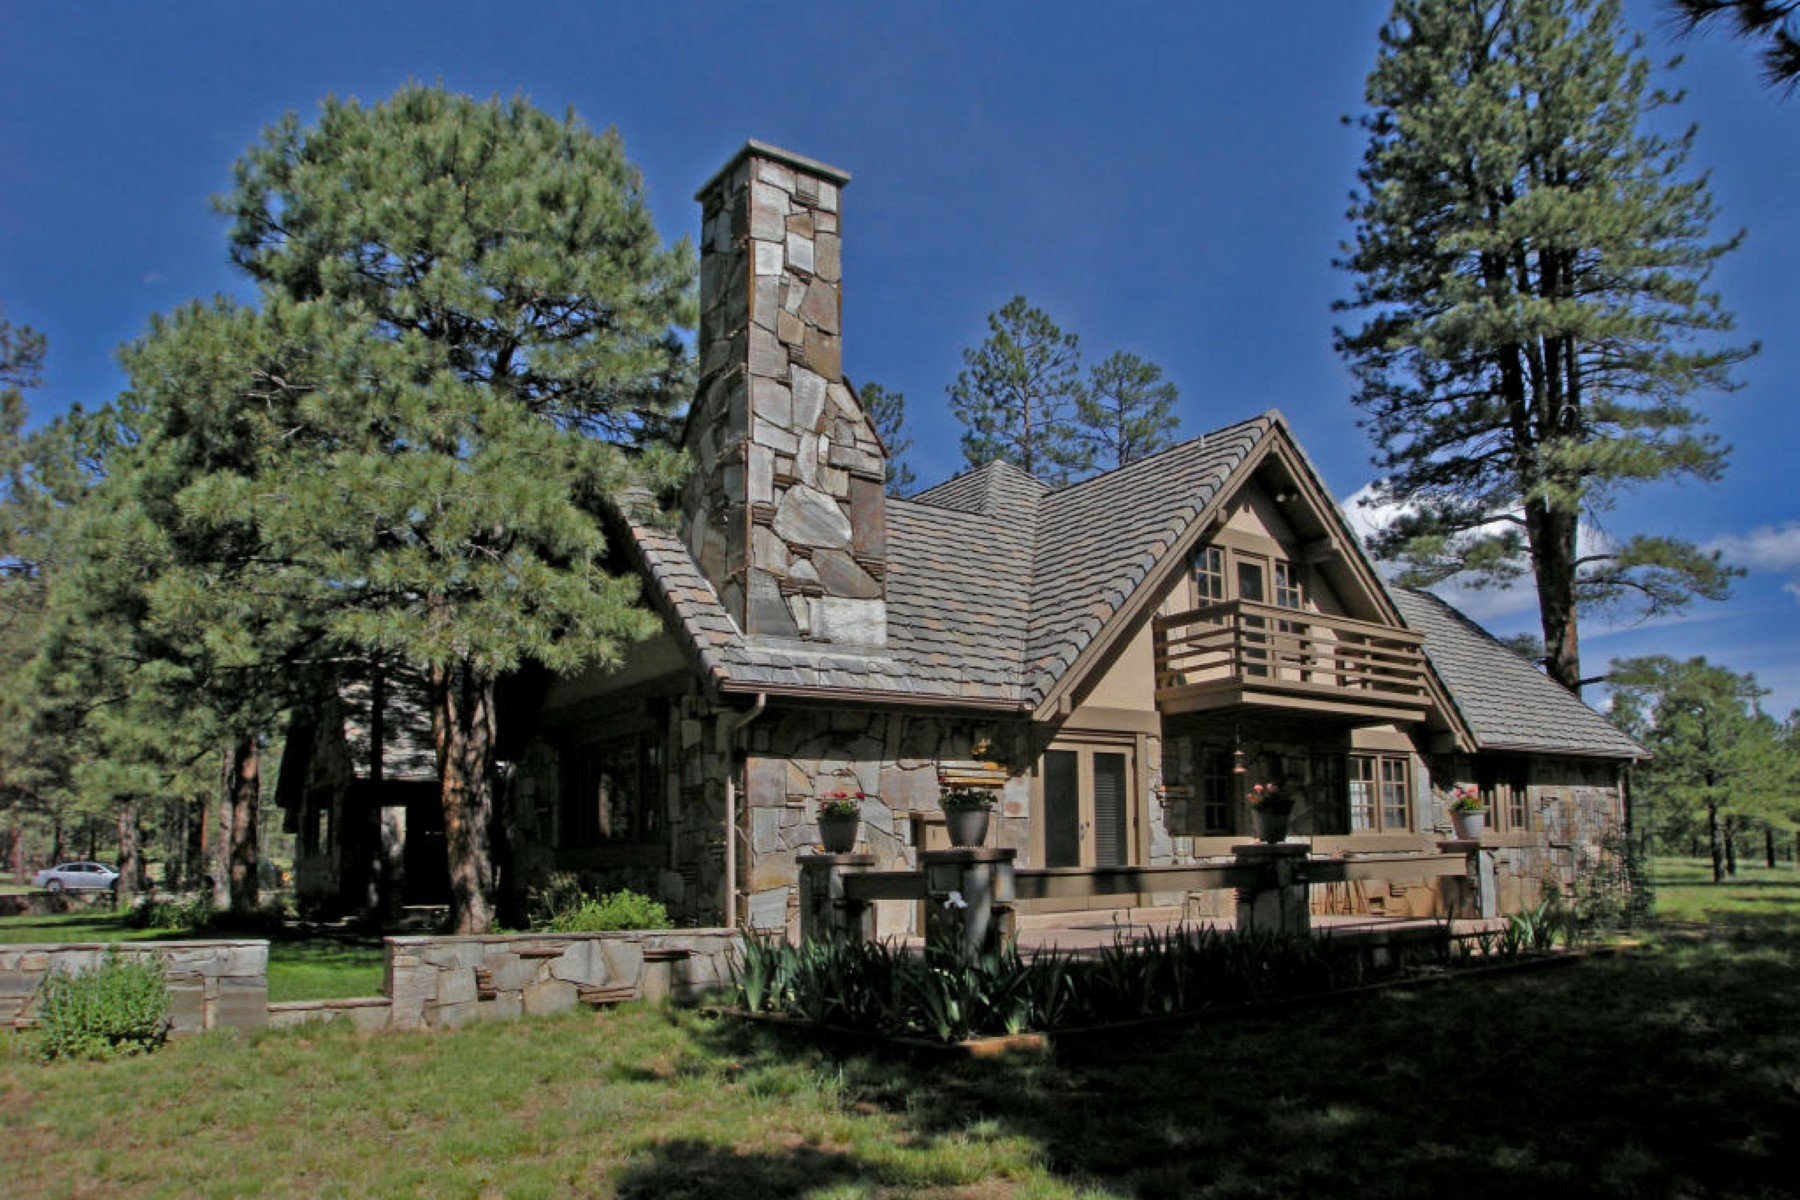 Single Family Home for Sale at Extraordinary Land with an exceptional home situated on 26 acres. 4100 Hidden Hollow RD Flagstaff, Arizona, 86001 United States